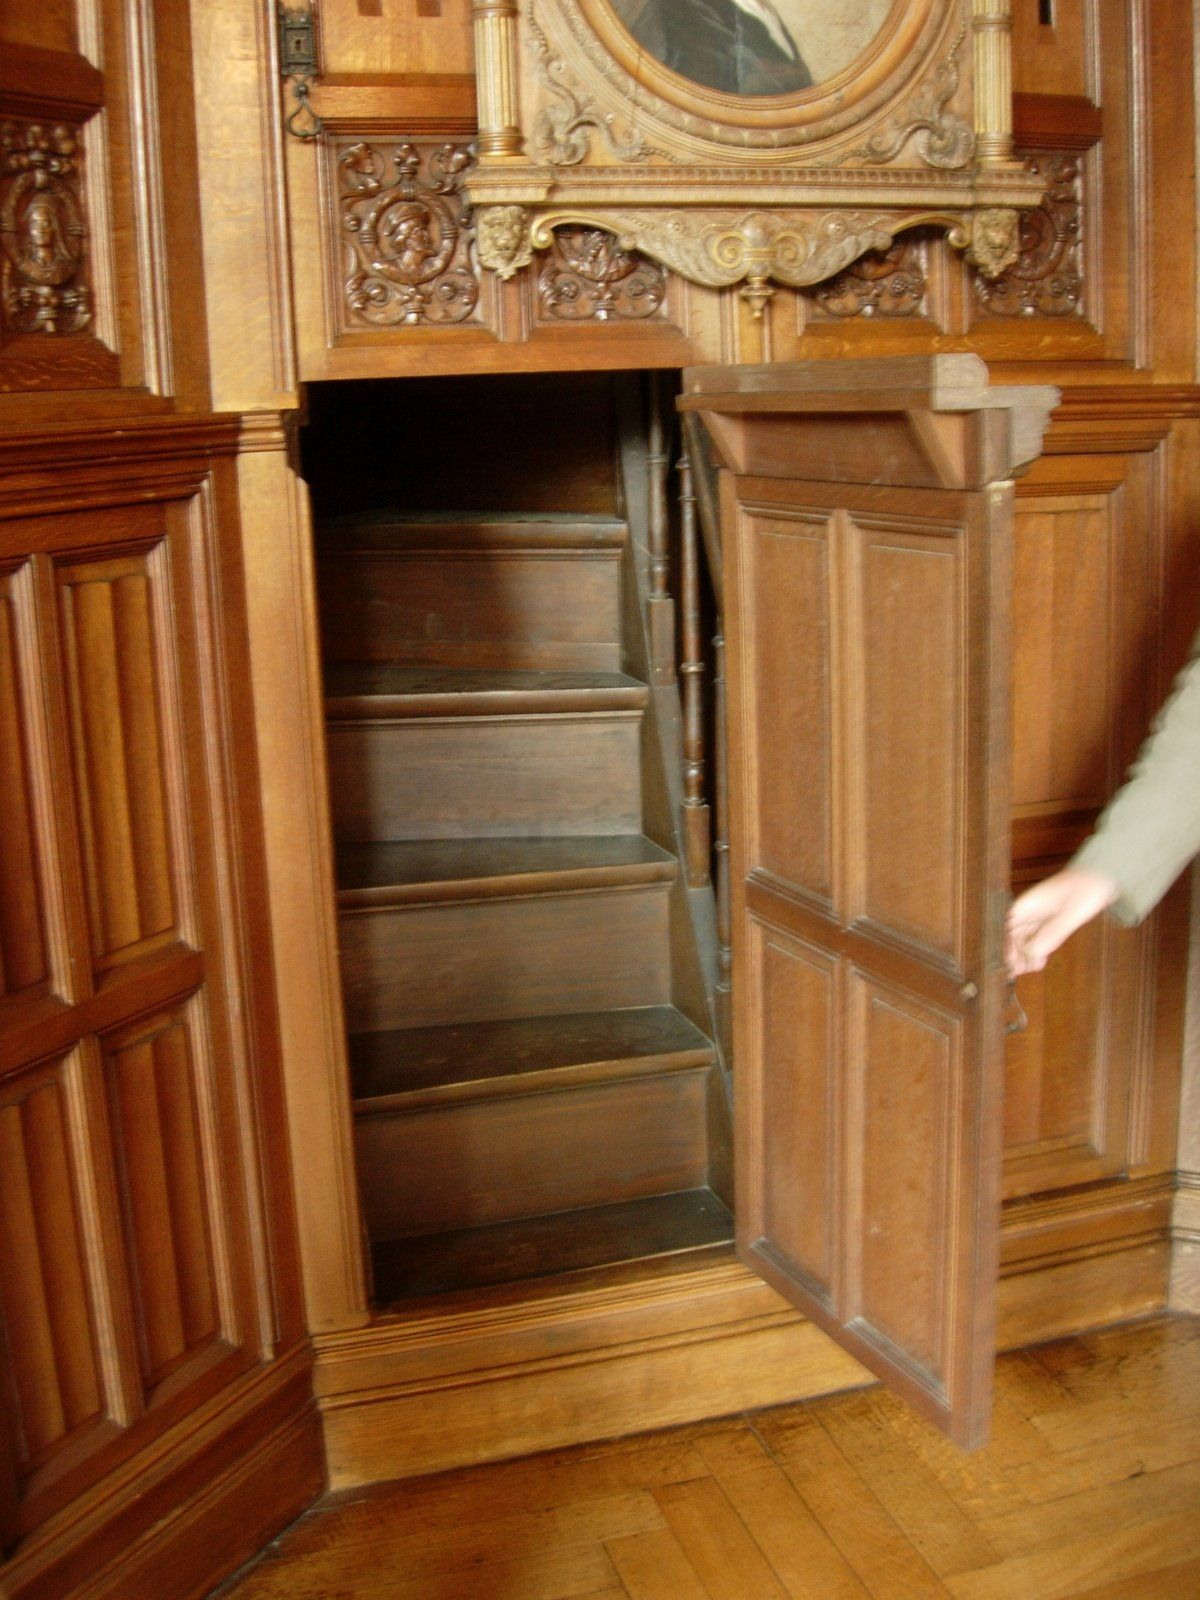 Secret door leads to a secret staircase More & Murphy Door Presents Top 5 Secret Doors in History | Pinterest ...